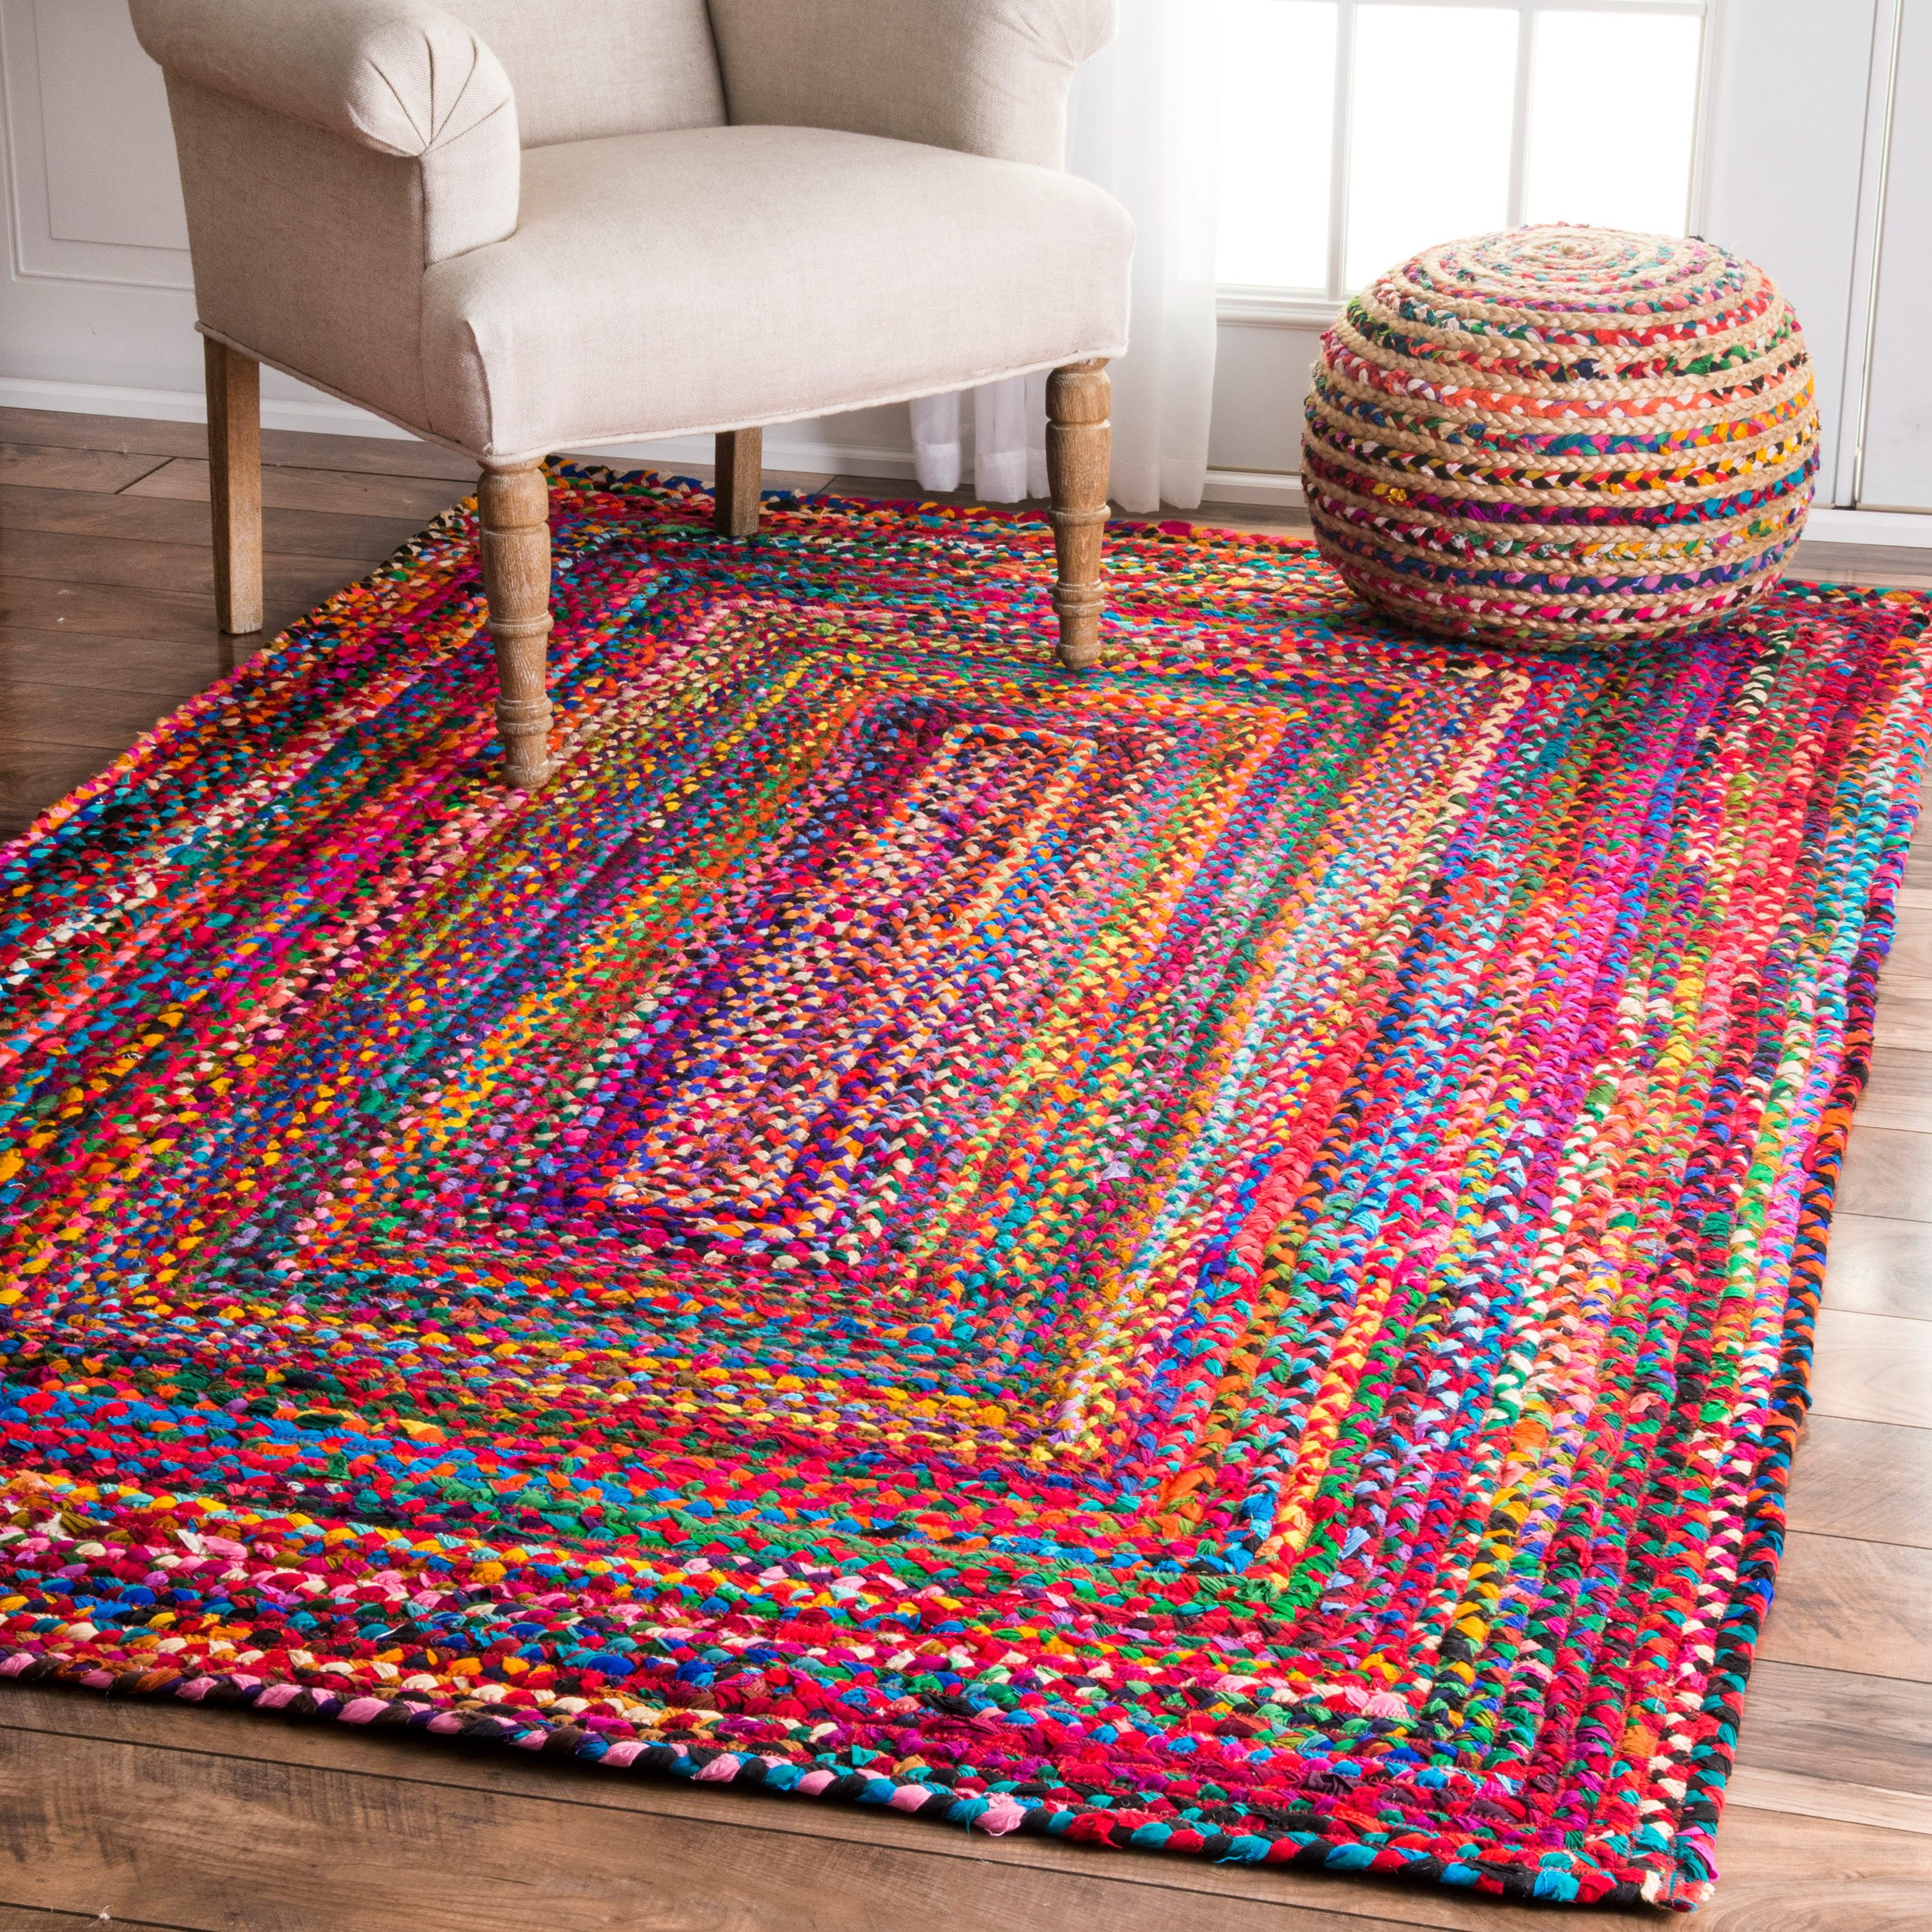 Casual Handmade Braided Cotton Multi Area Rugs, 7 Feet 6 Inches by 9 Feet 6 Inches (7' 6'' x 9' 6'')